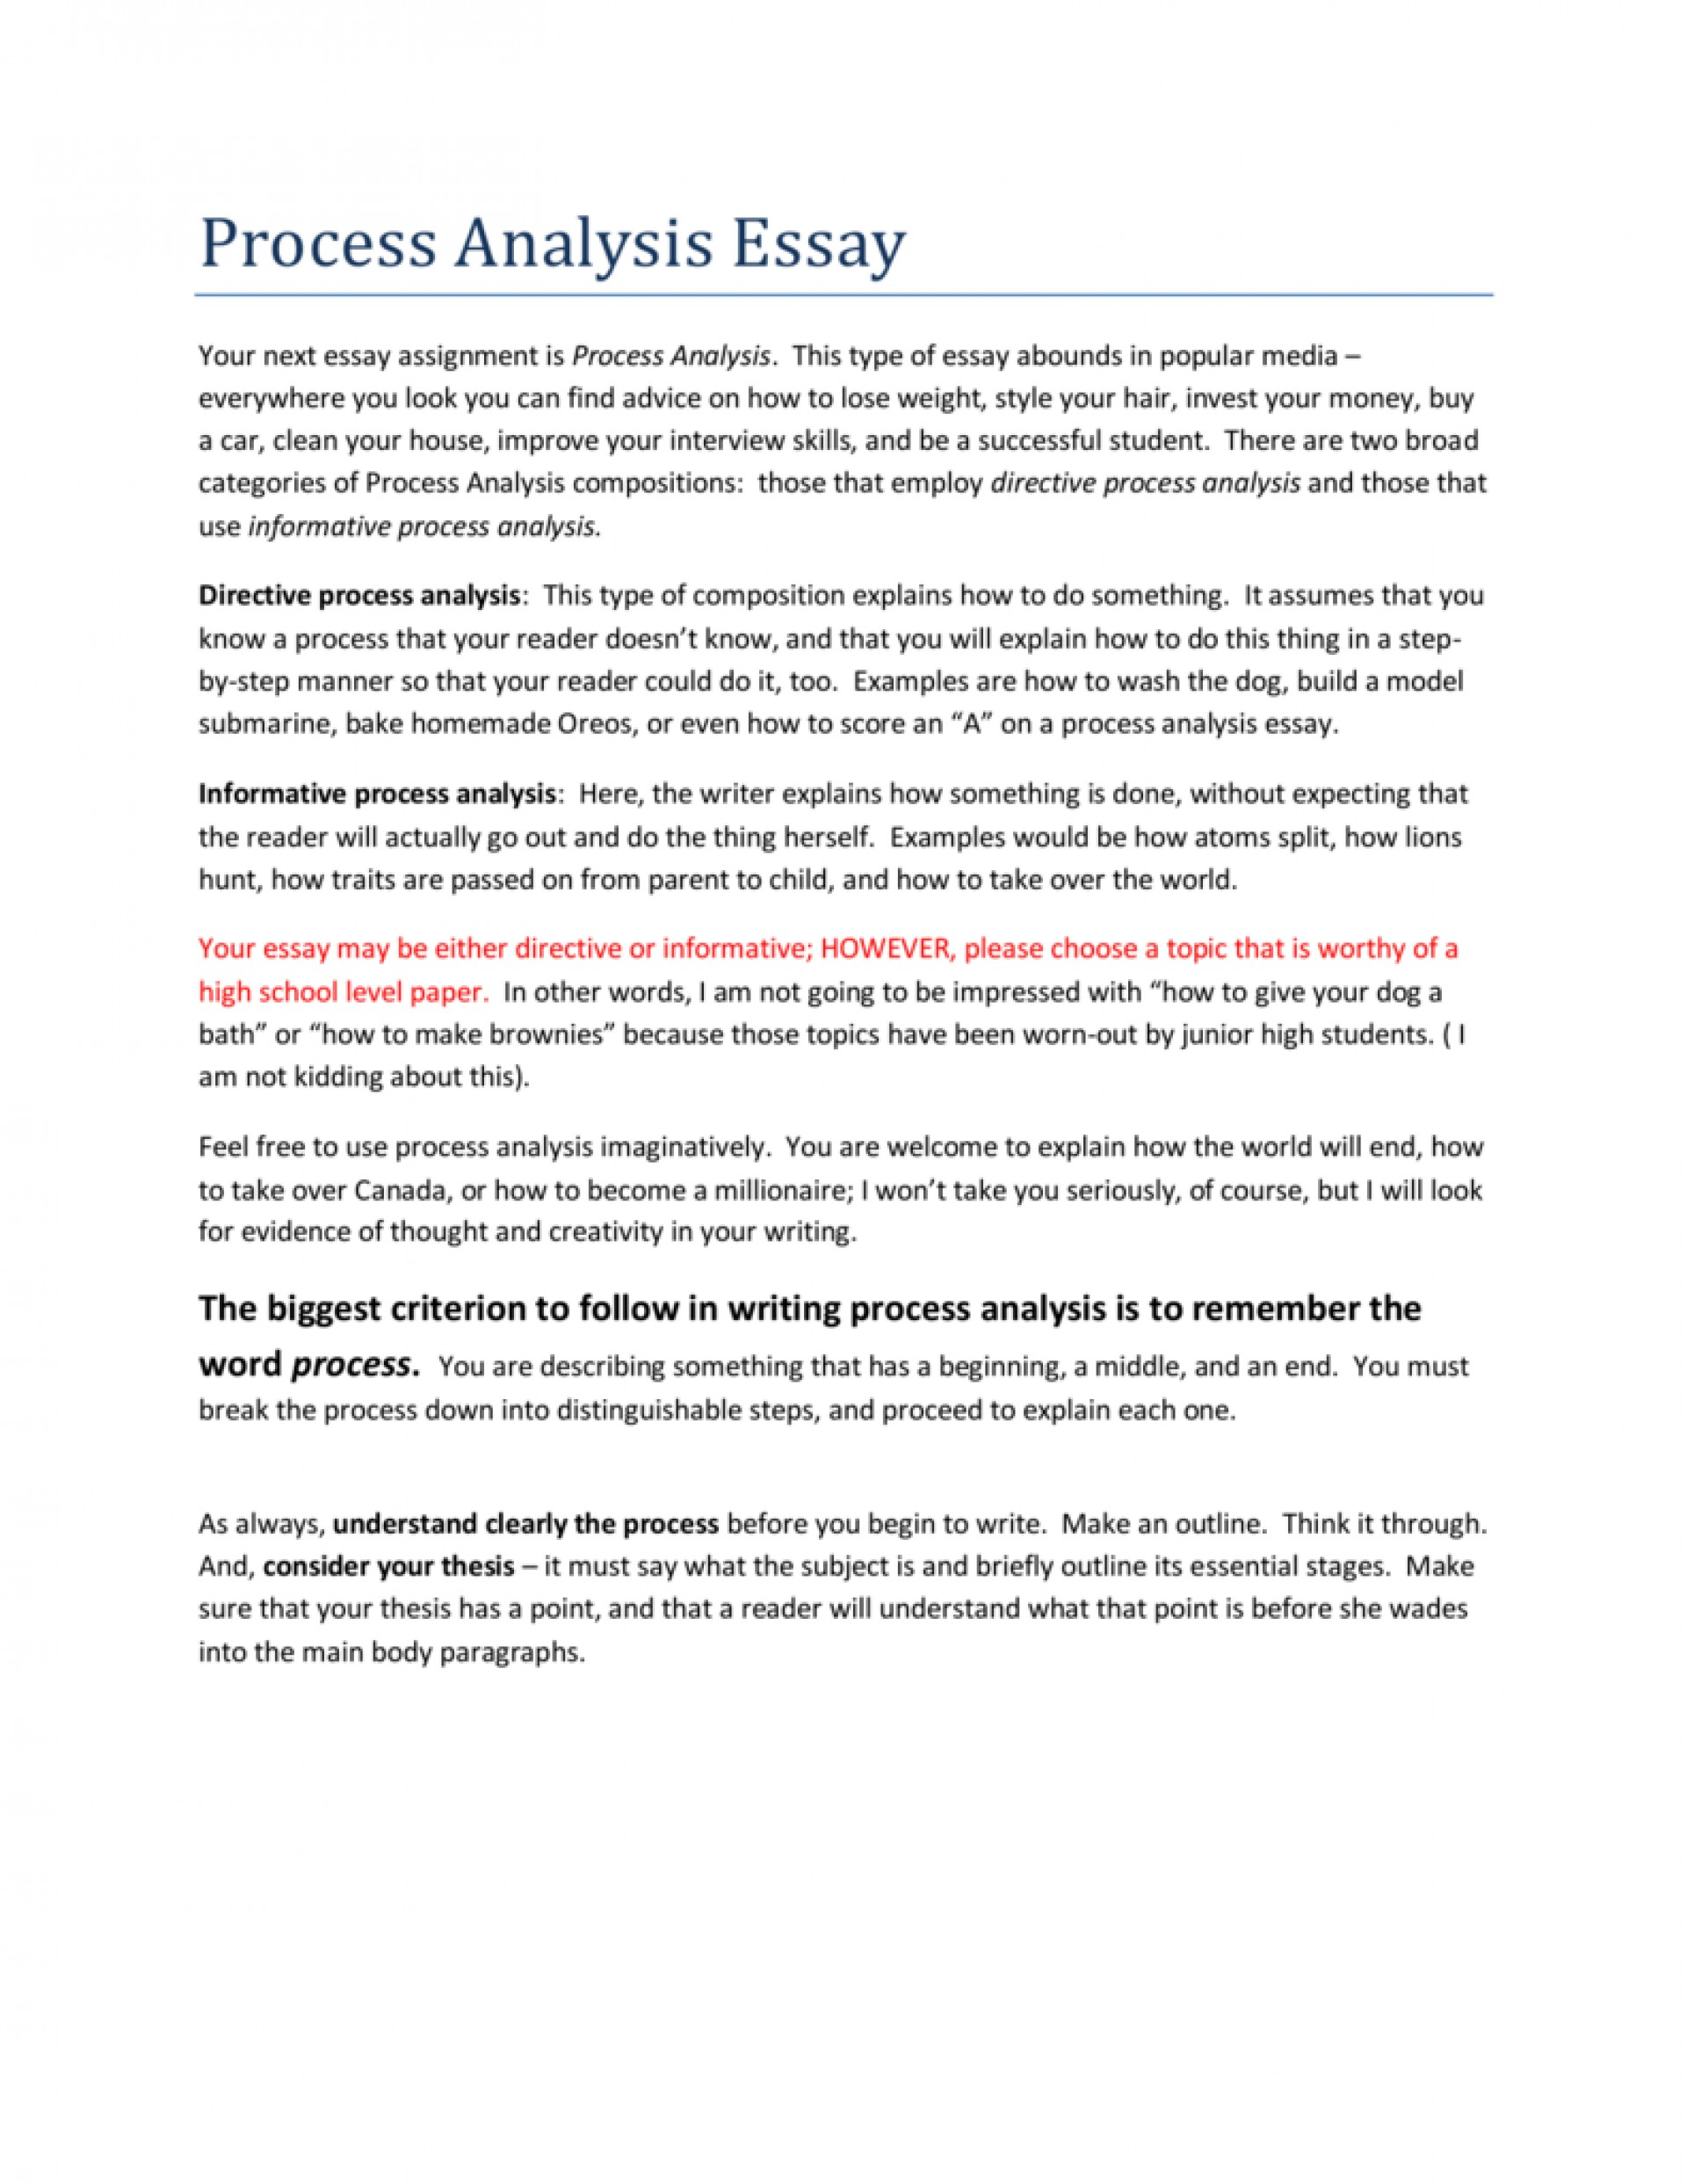 002 008757254 1 Essay Example How To Do Exceptional A Process Start Off You Write Analysis 1920